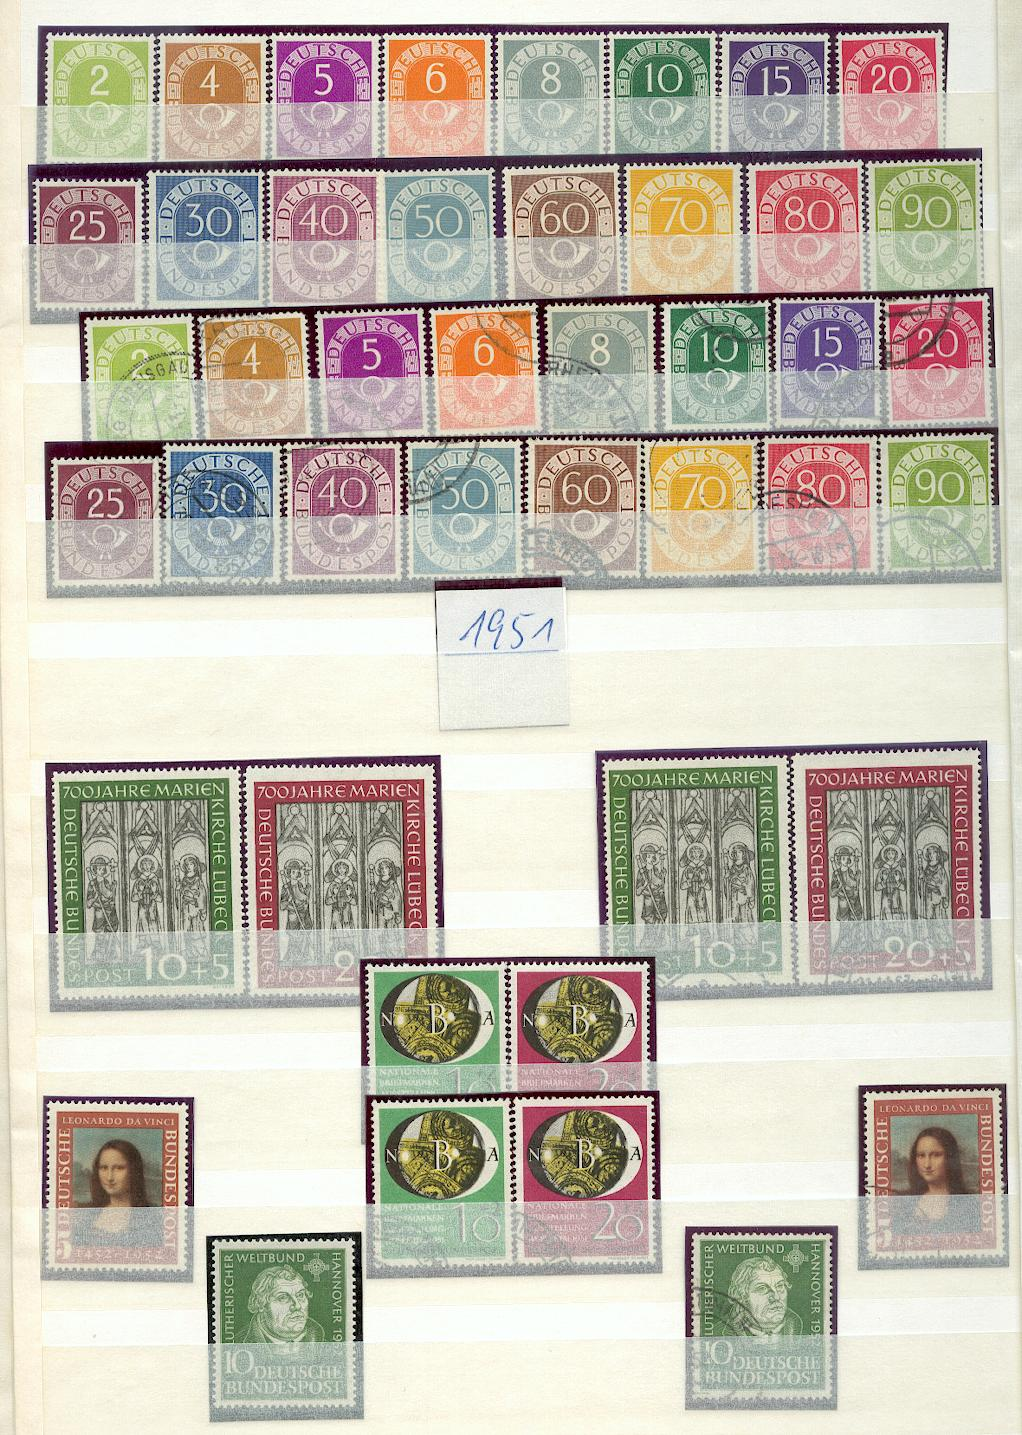 BUND-1949-1982-und-gest-je-KOMPLETTE-SAMMMLUNG-R8827d